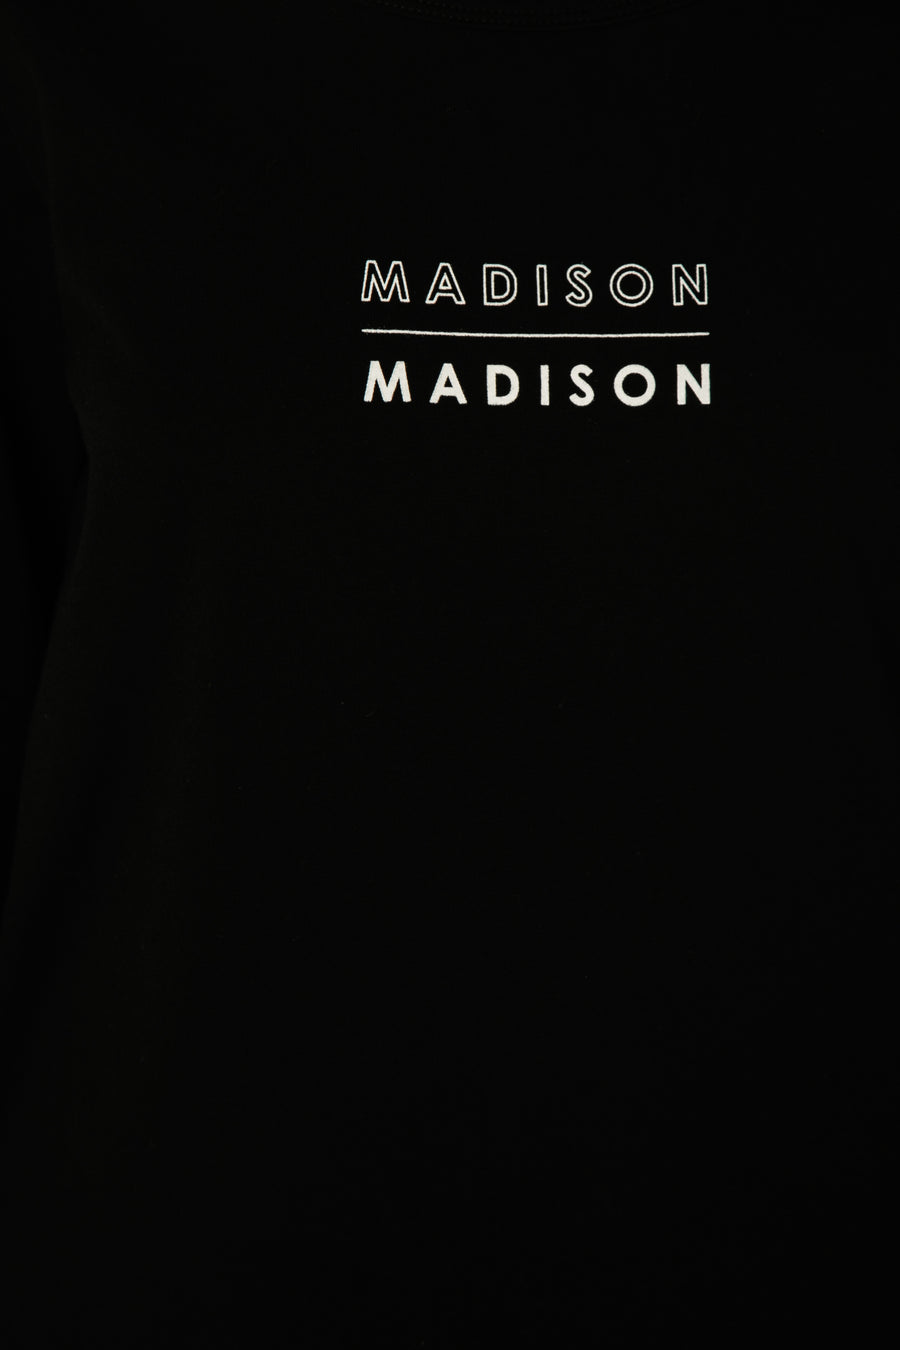 Madison Madison Long Sleeve Top | Black